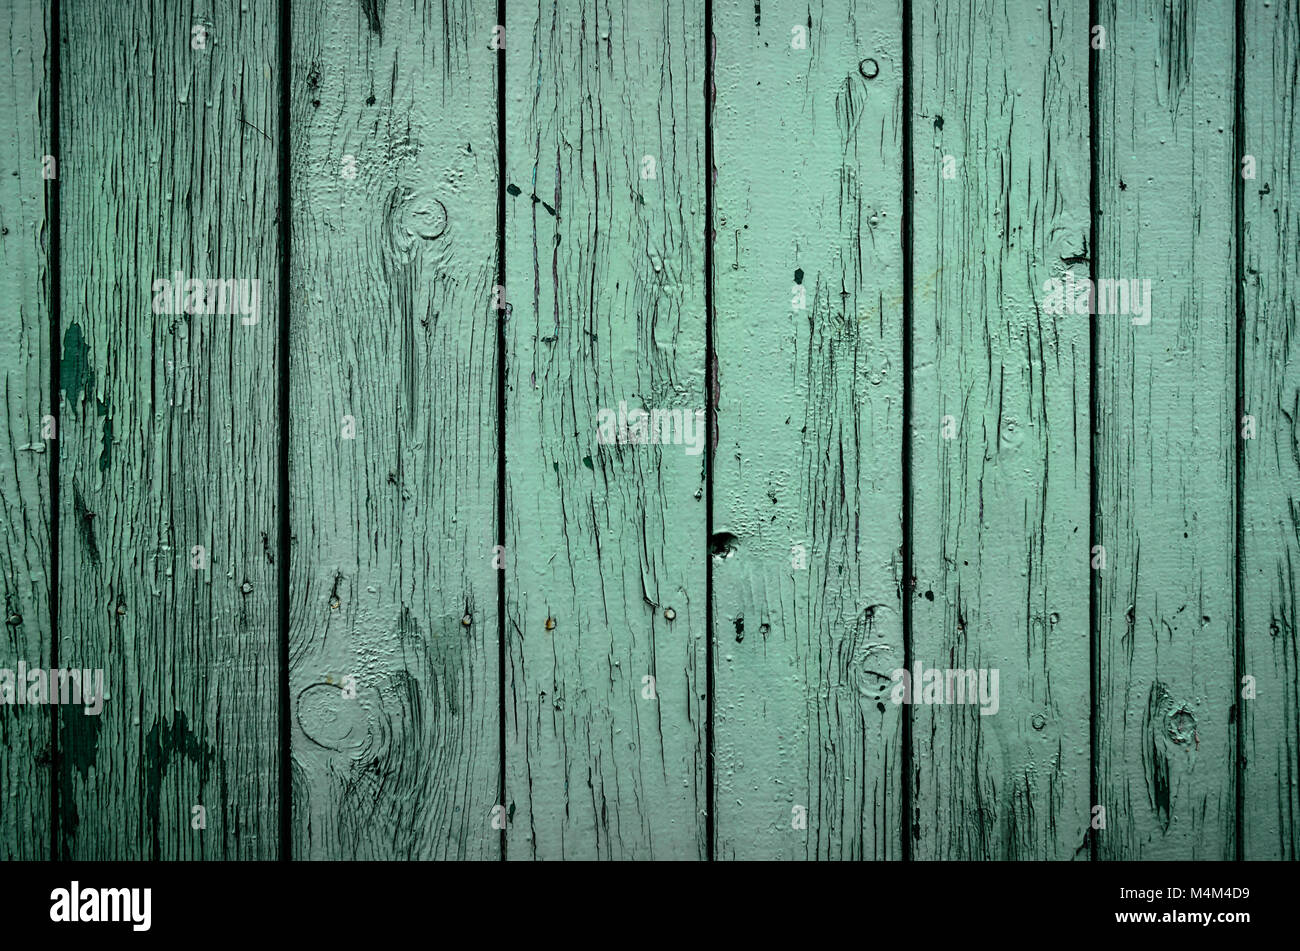 wood planks texture vintage fence stockfotos & wood planks texture